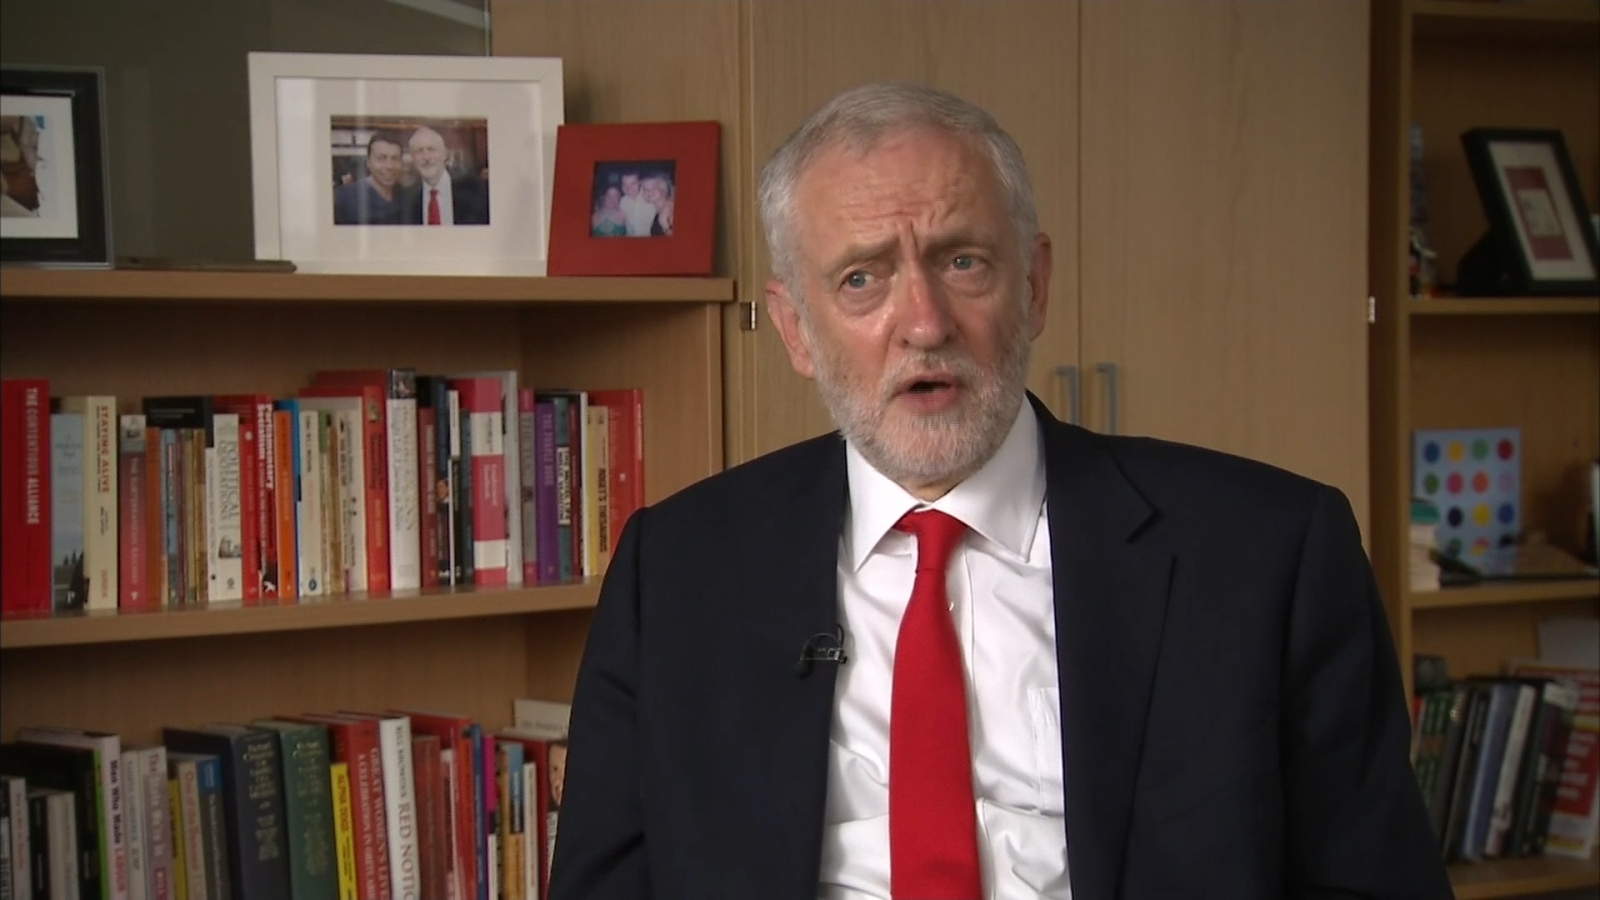 i-think-its-pretty-clear-who-won-this-election-jeremy-corbyn-says-conservatives-are-party-that-have-lost